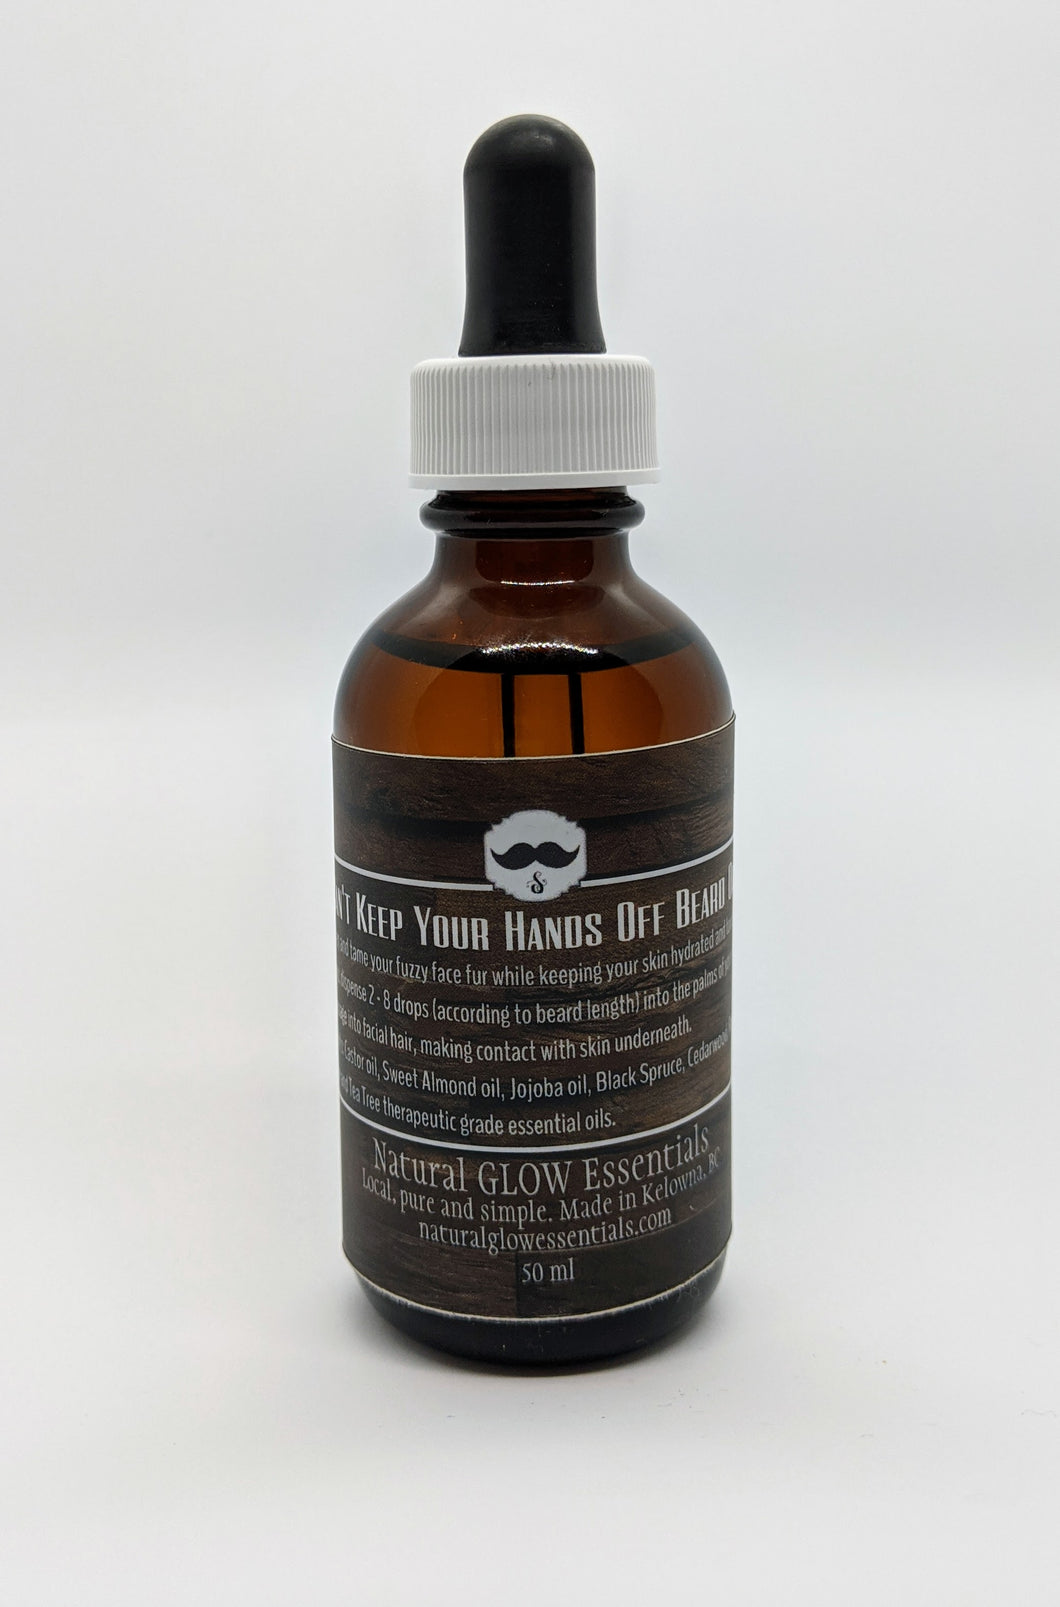 Can't Keep Your Hands Off Beard Oil 50ml